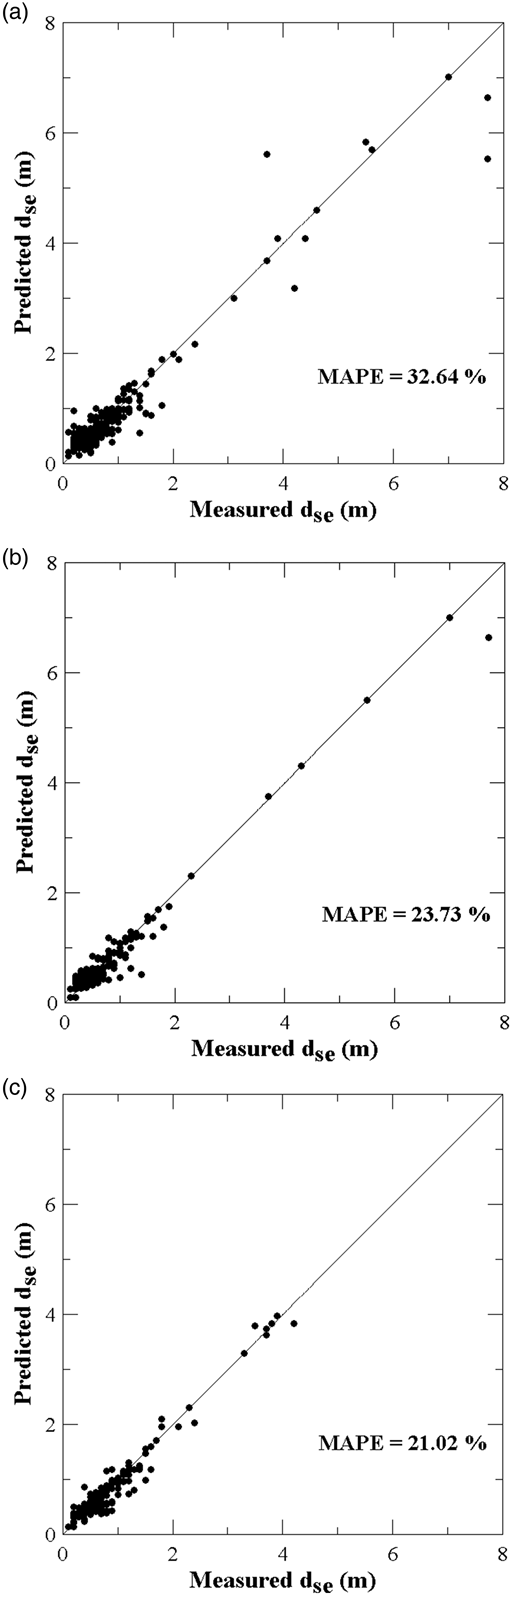 Applications to field data when the filed data are used for training: (a) without data quality assessment, (b) screened by EDM, and (c) screened by MDM.